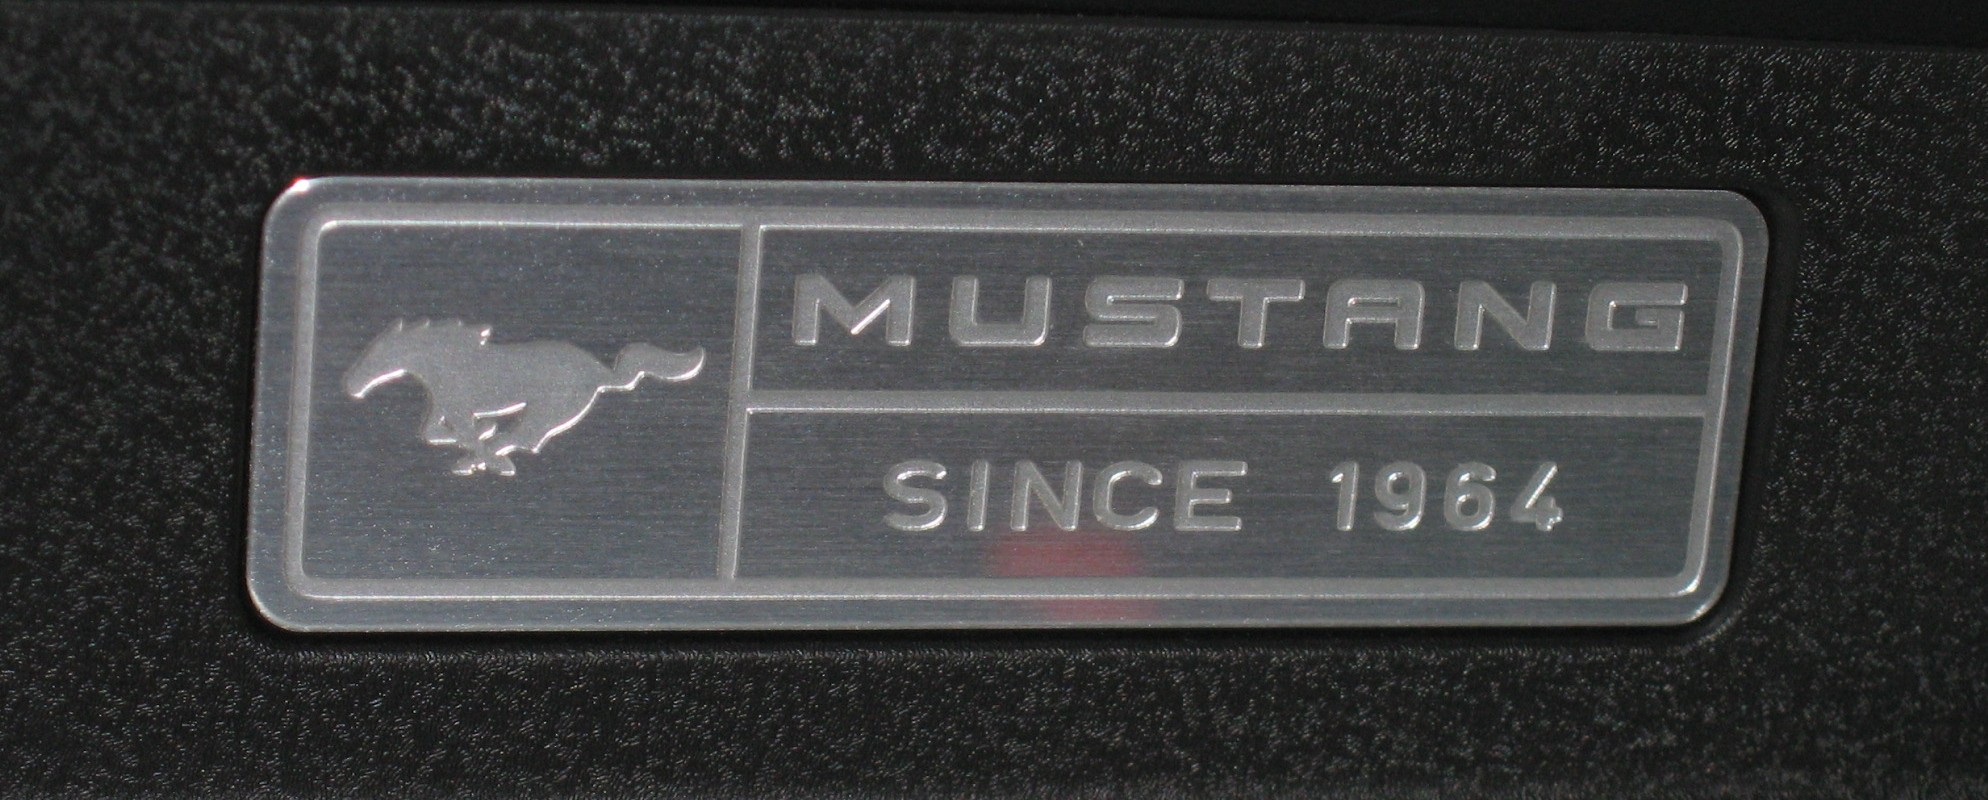 Ford Mustang 2.3 EcoBoost Auto road test report and review